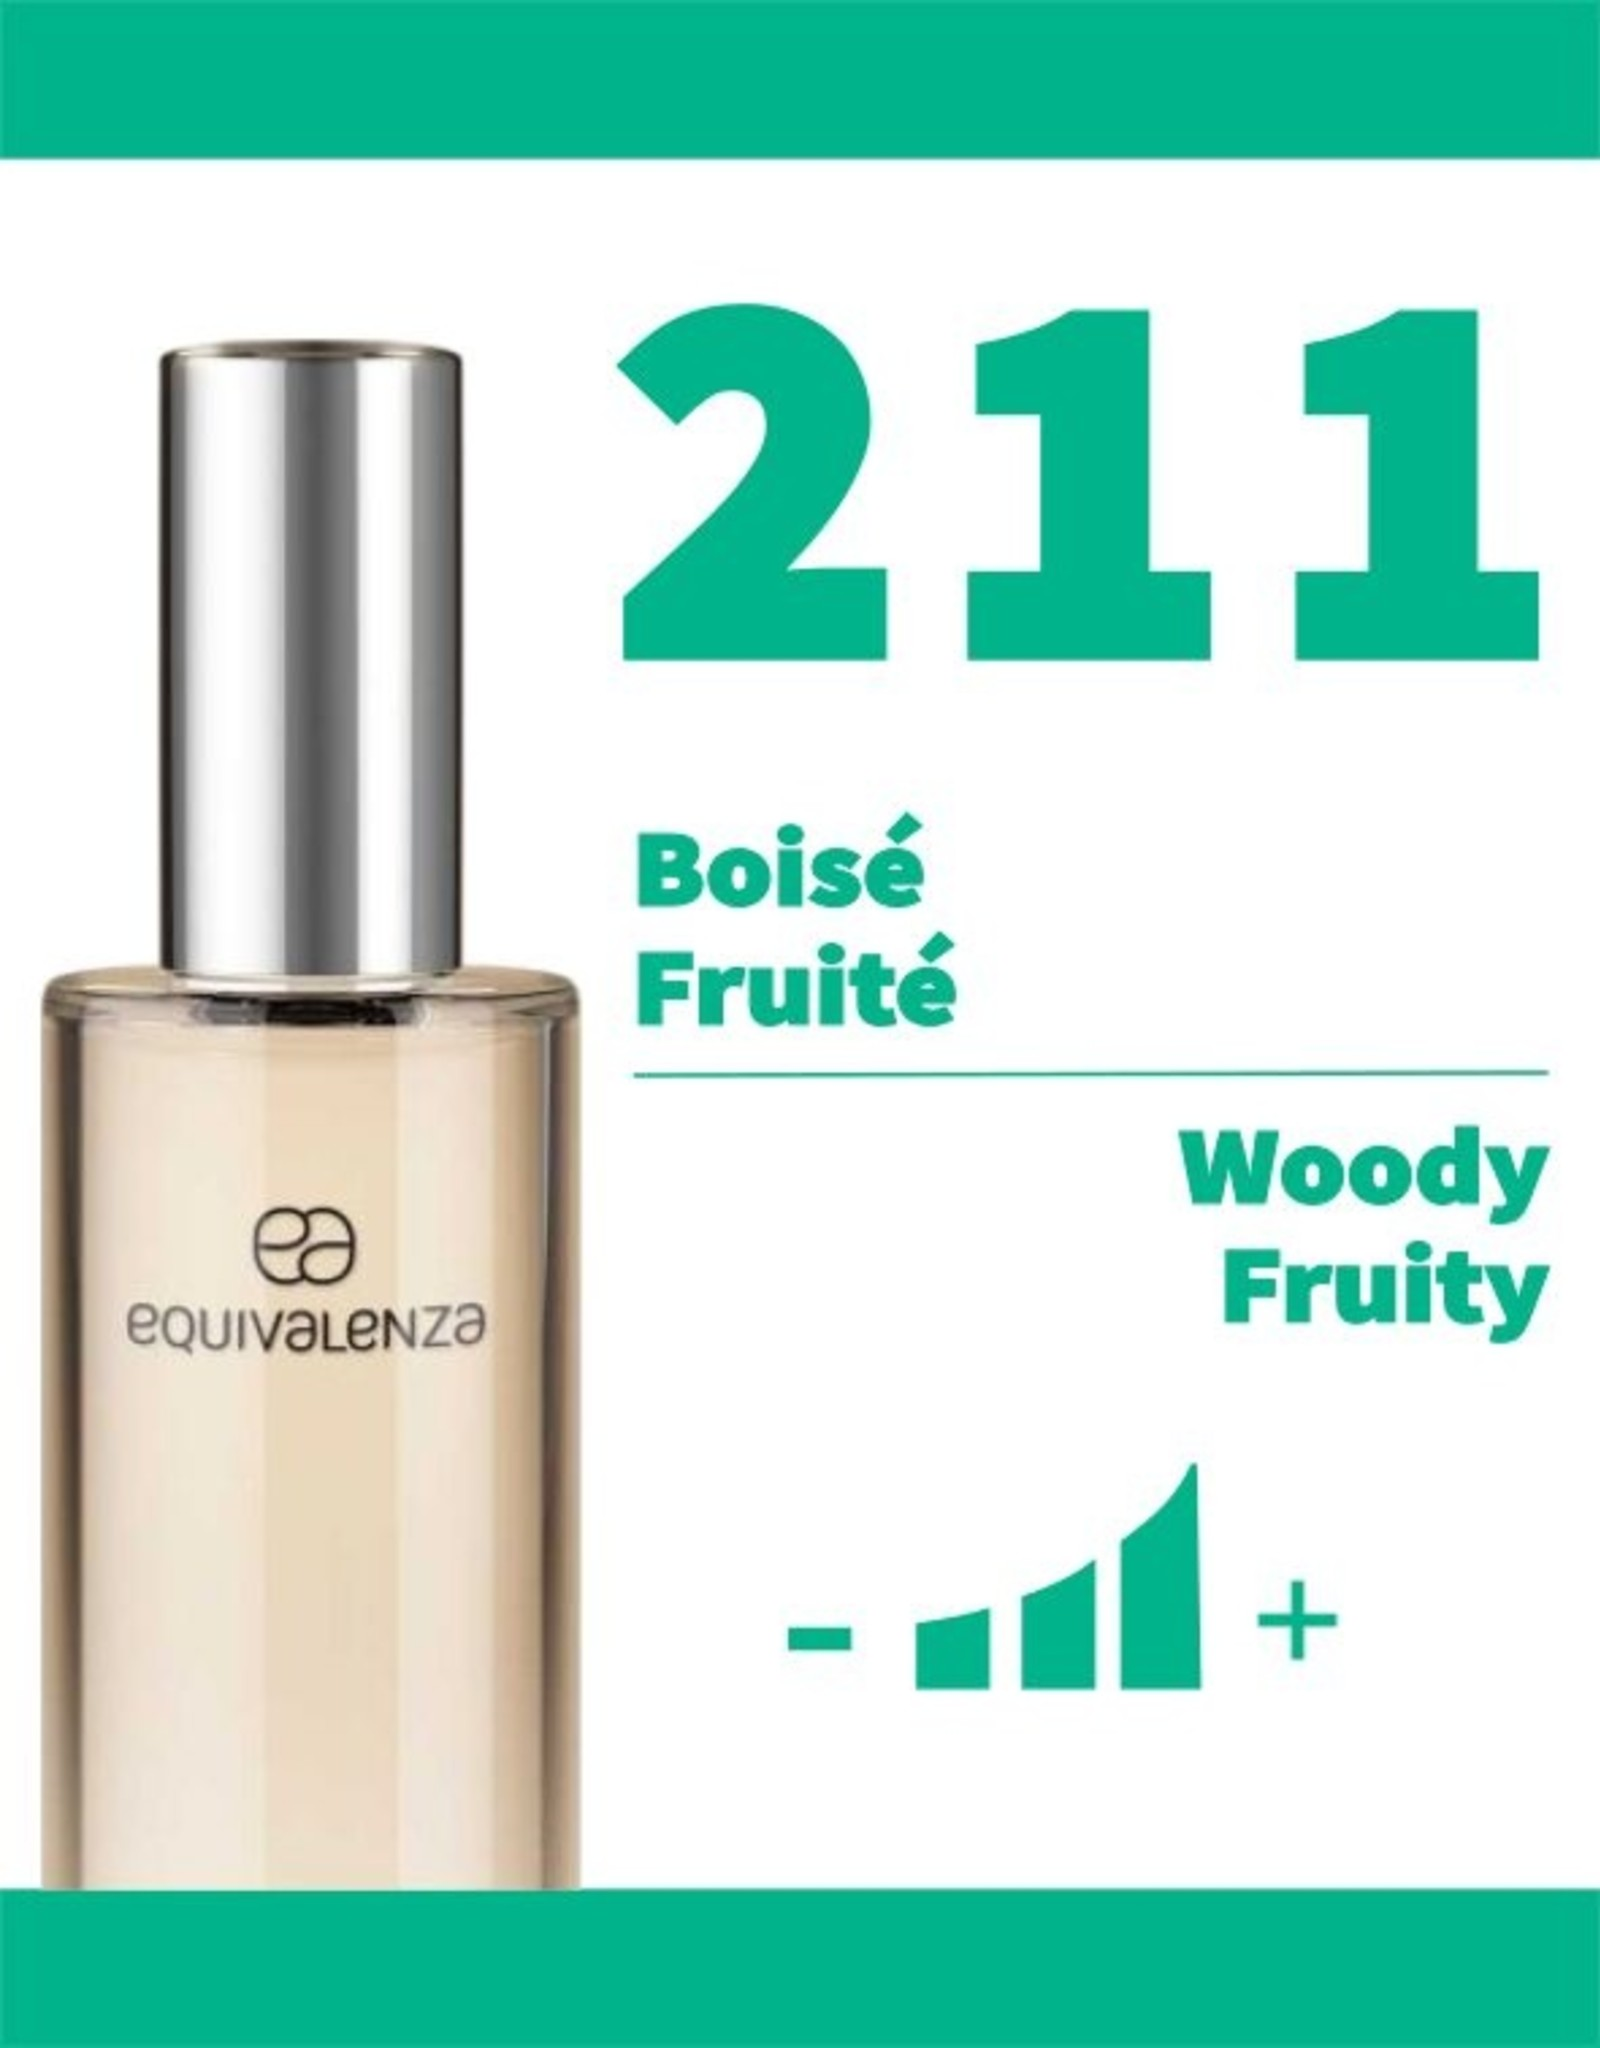 Equivalenza Woody Fruity 211